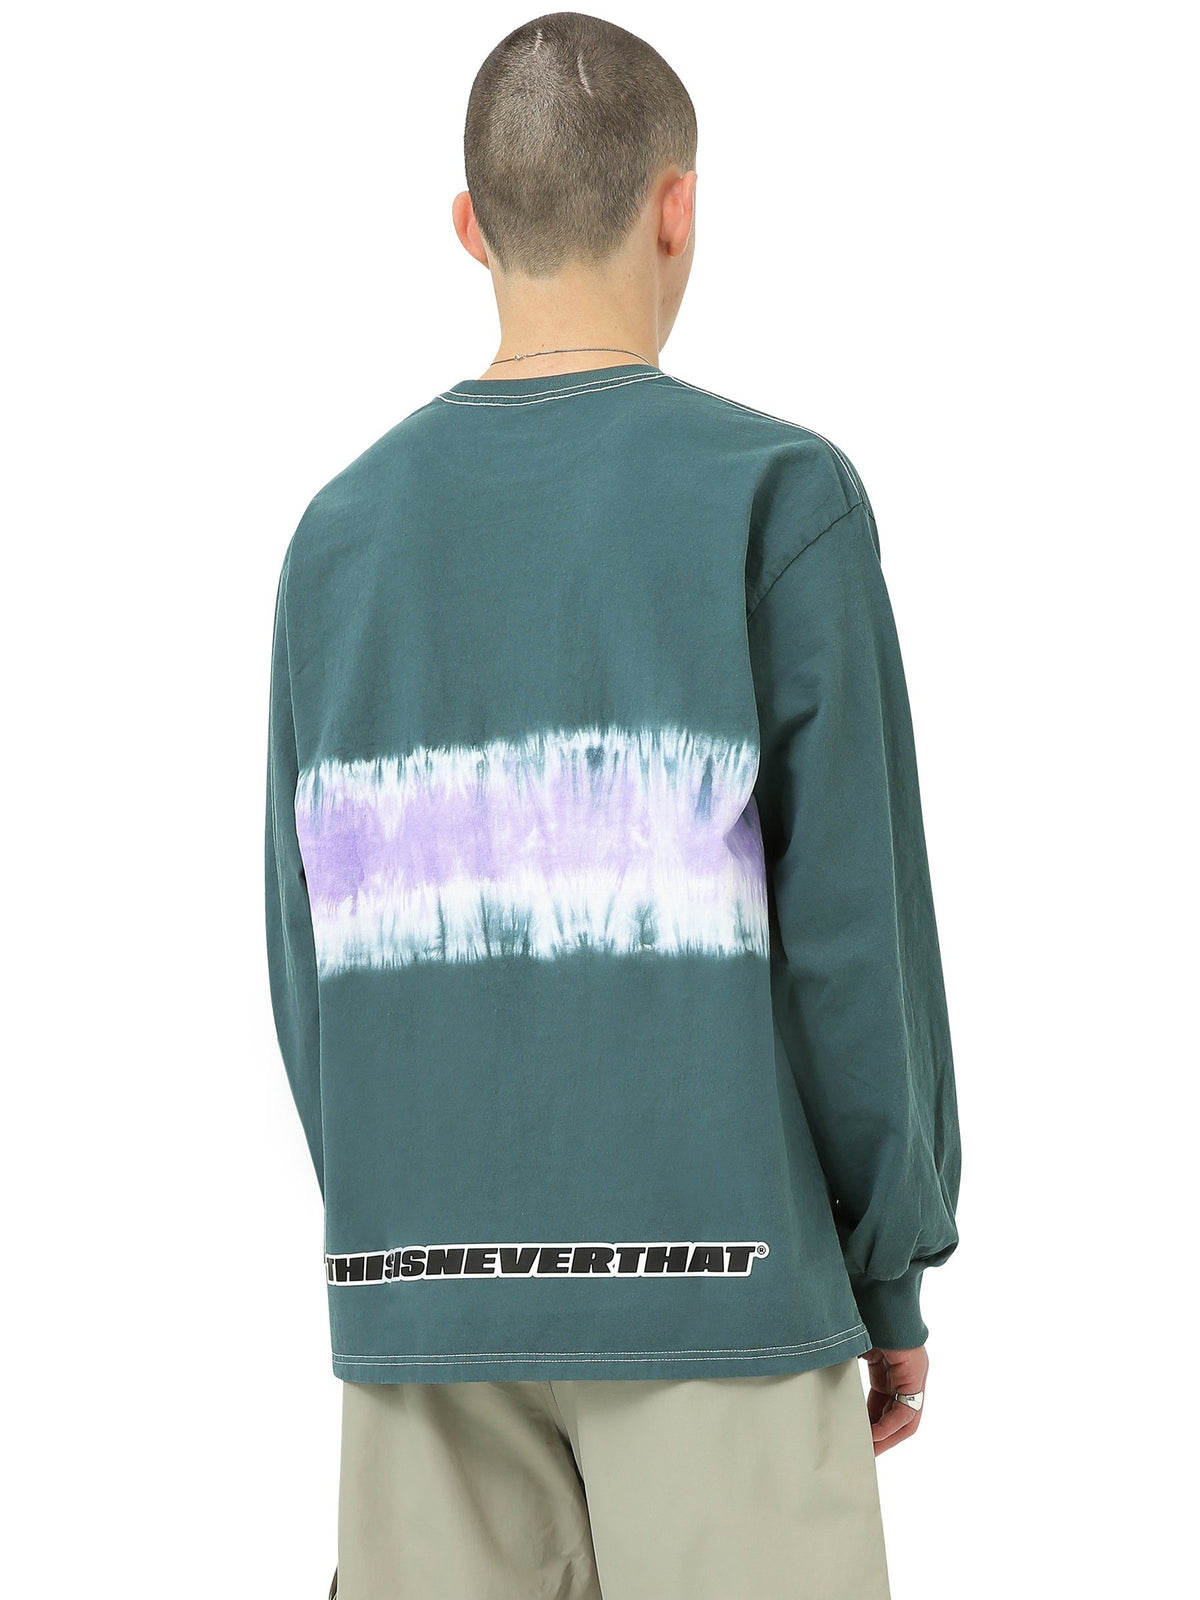 Striped Tiedye L/SL Top - thisisneverthat